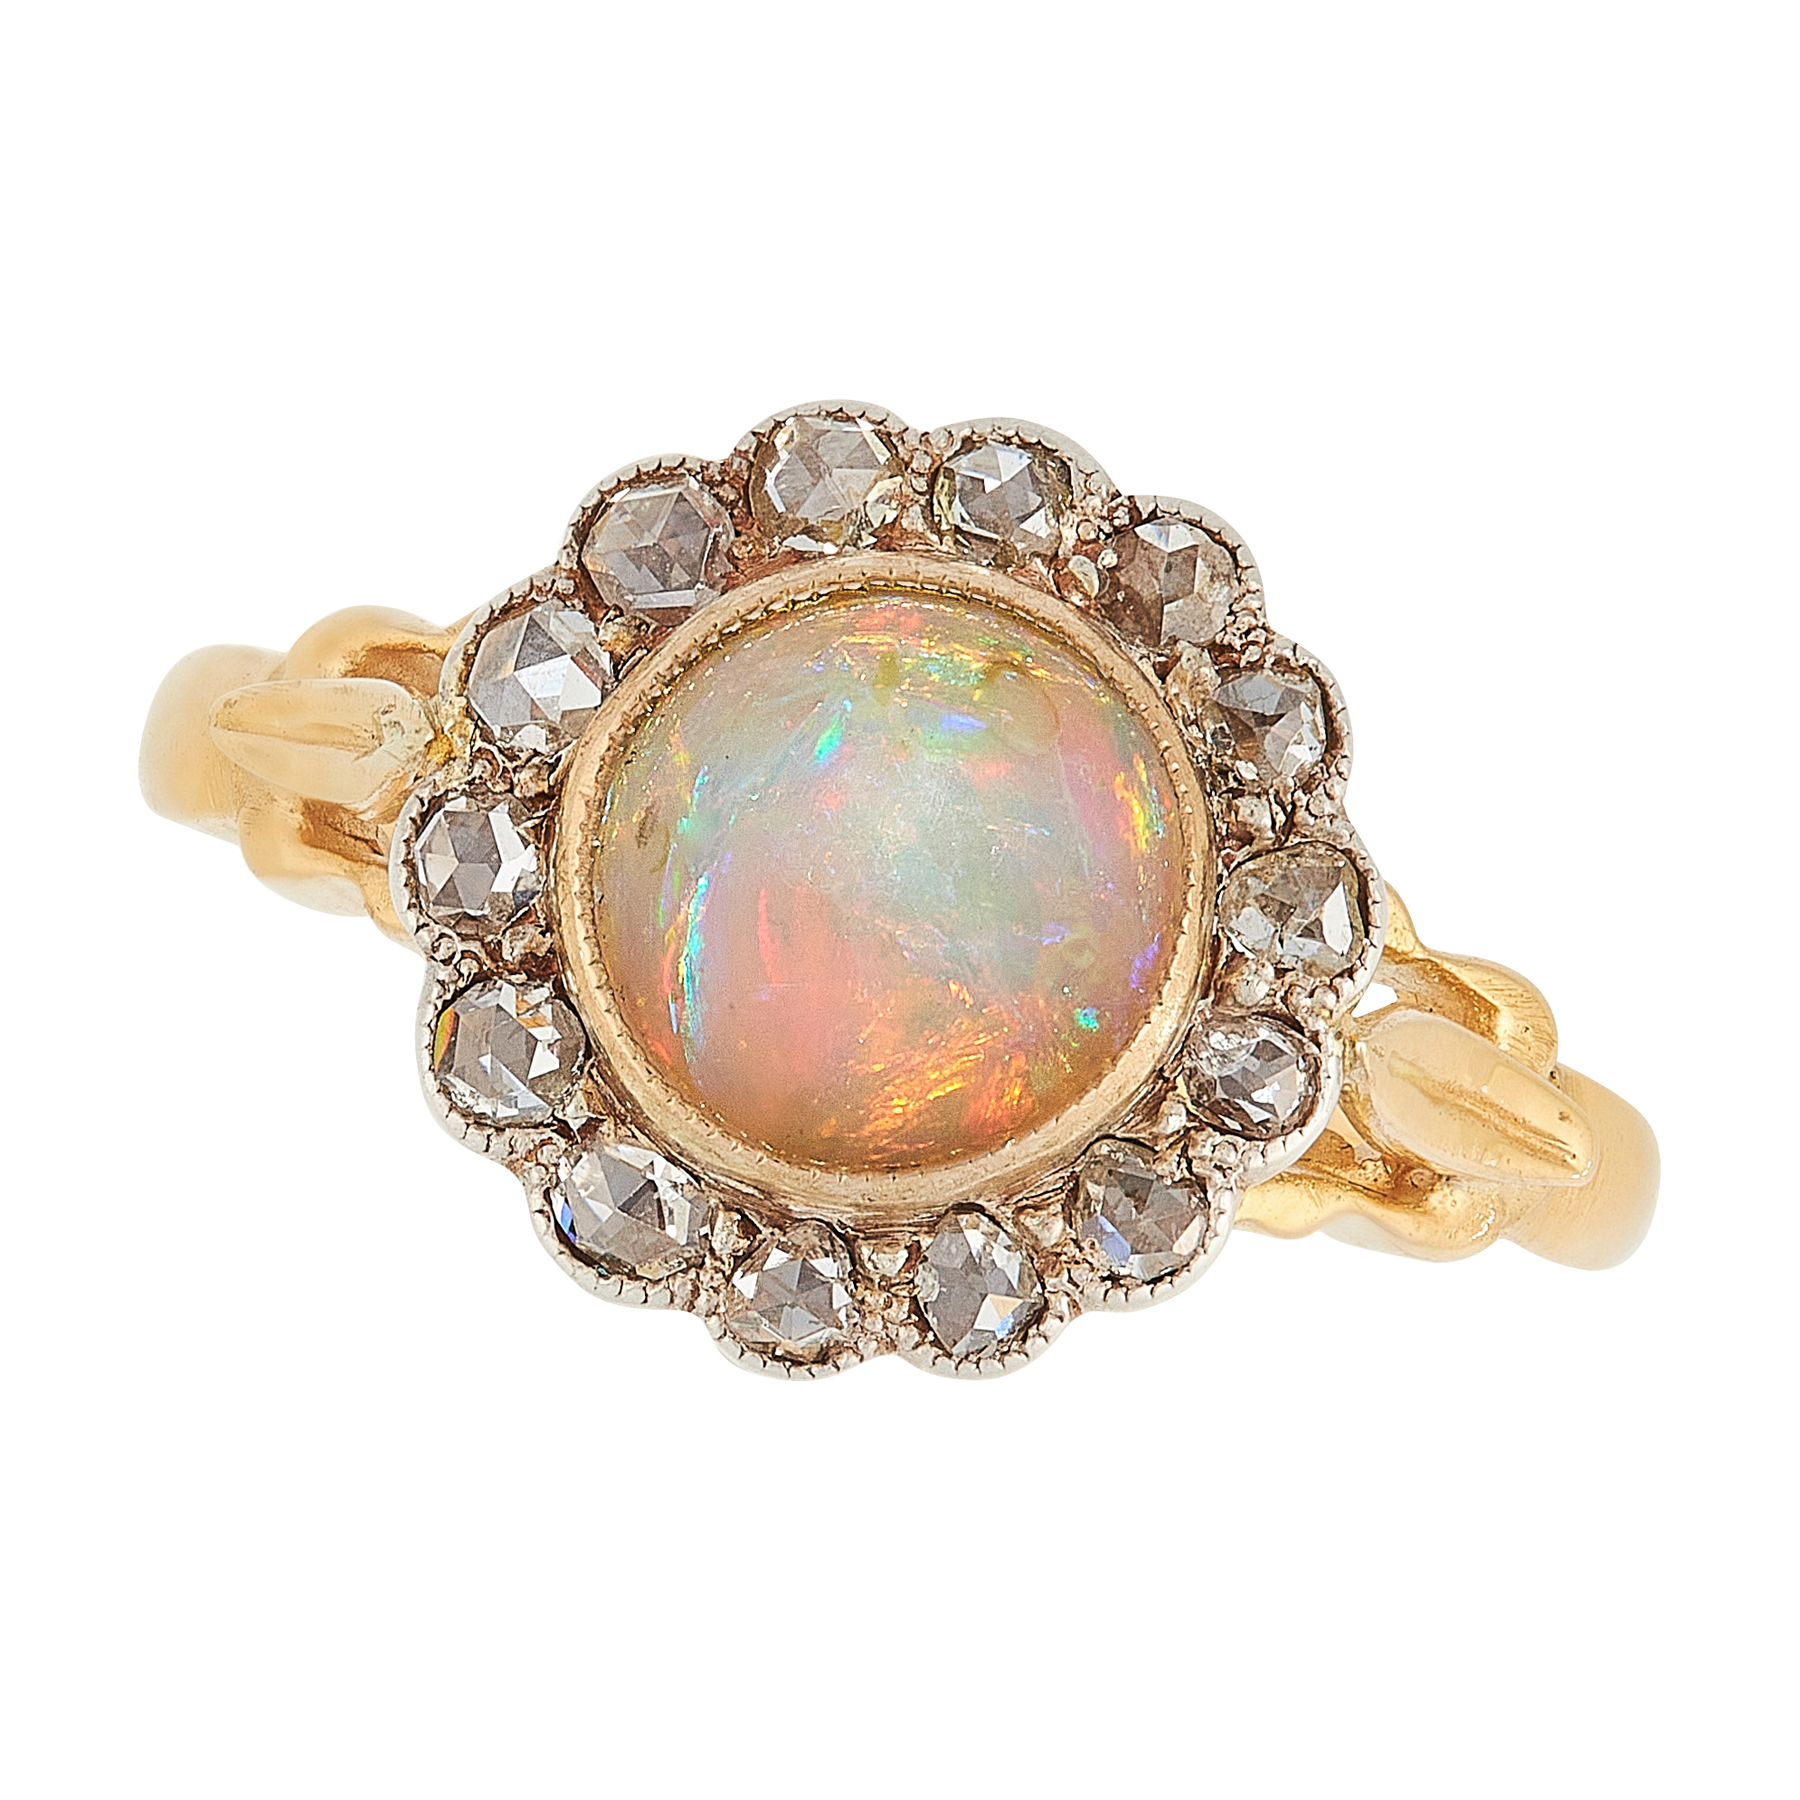 AN OPAL AND DIAMOND CLUSTER RING in high carat yellow gold, set with a cabochon opal in a border